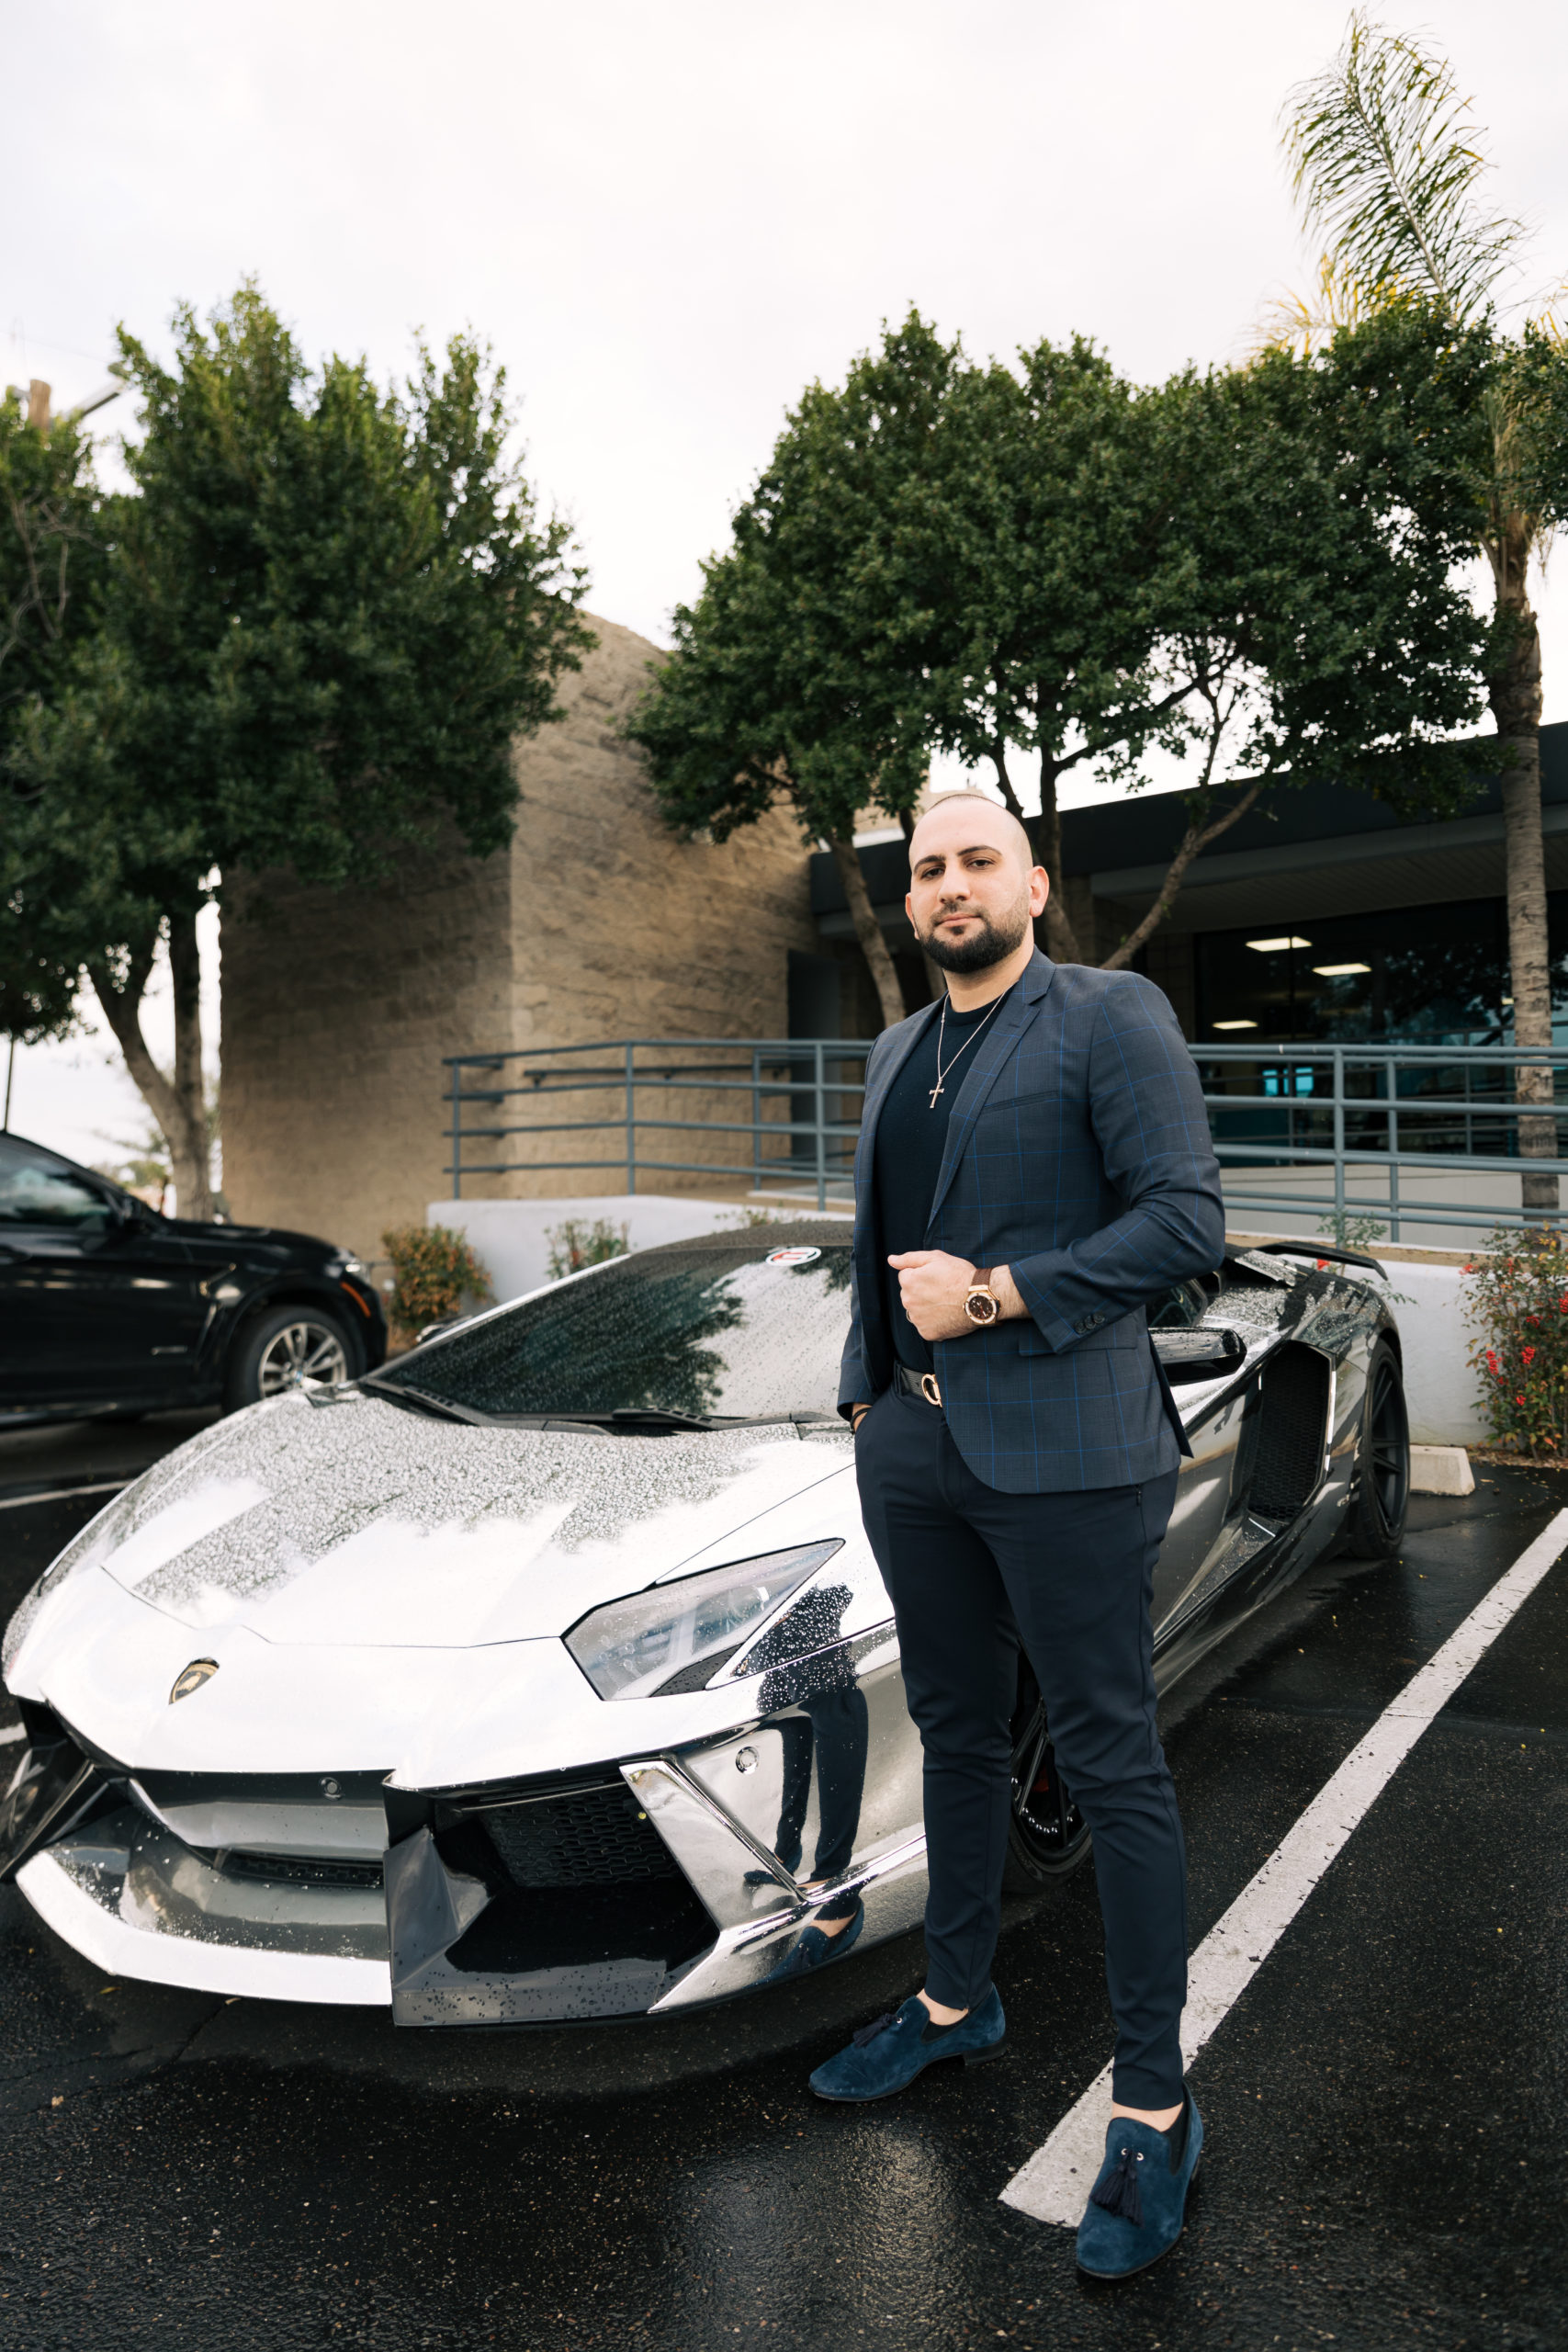 Sal Shakir Is A Multi-Millionaire who Helps People To Achieve Financial Freedom & Overcome Barriers